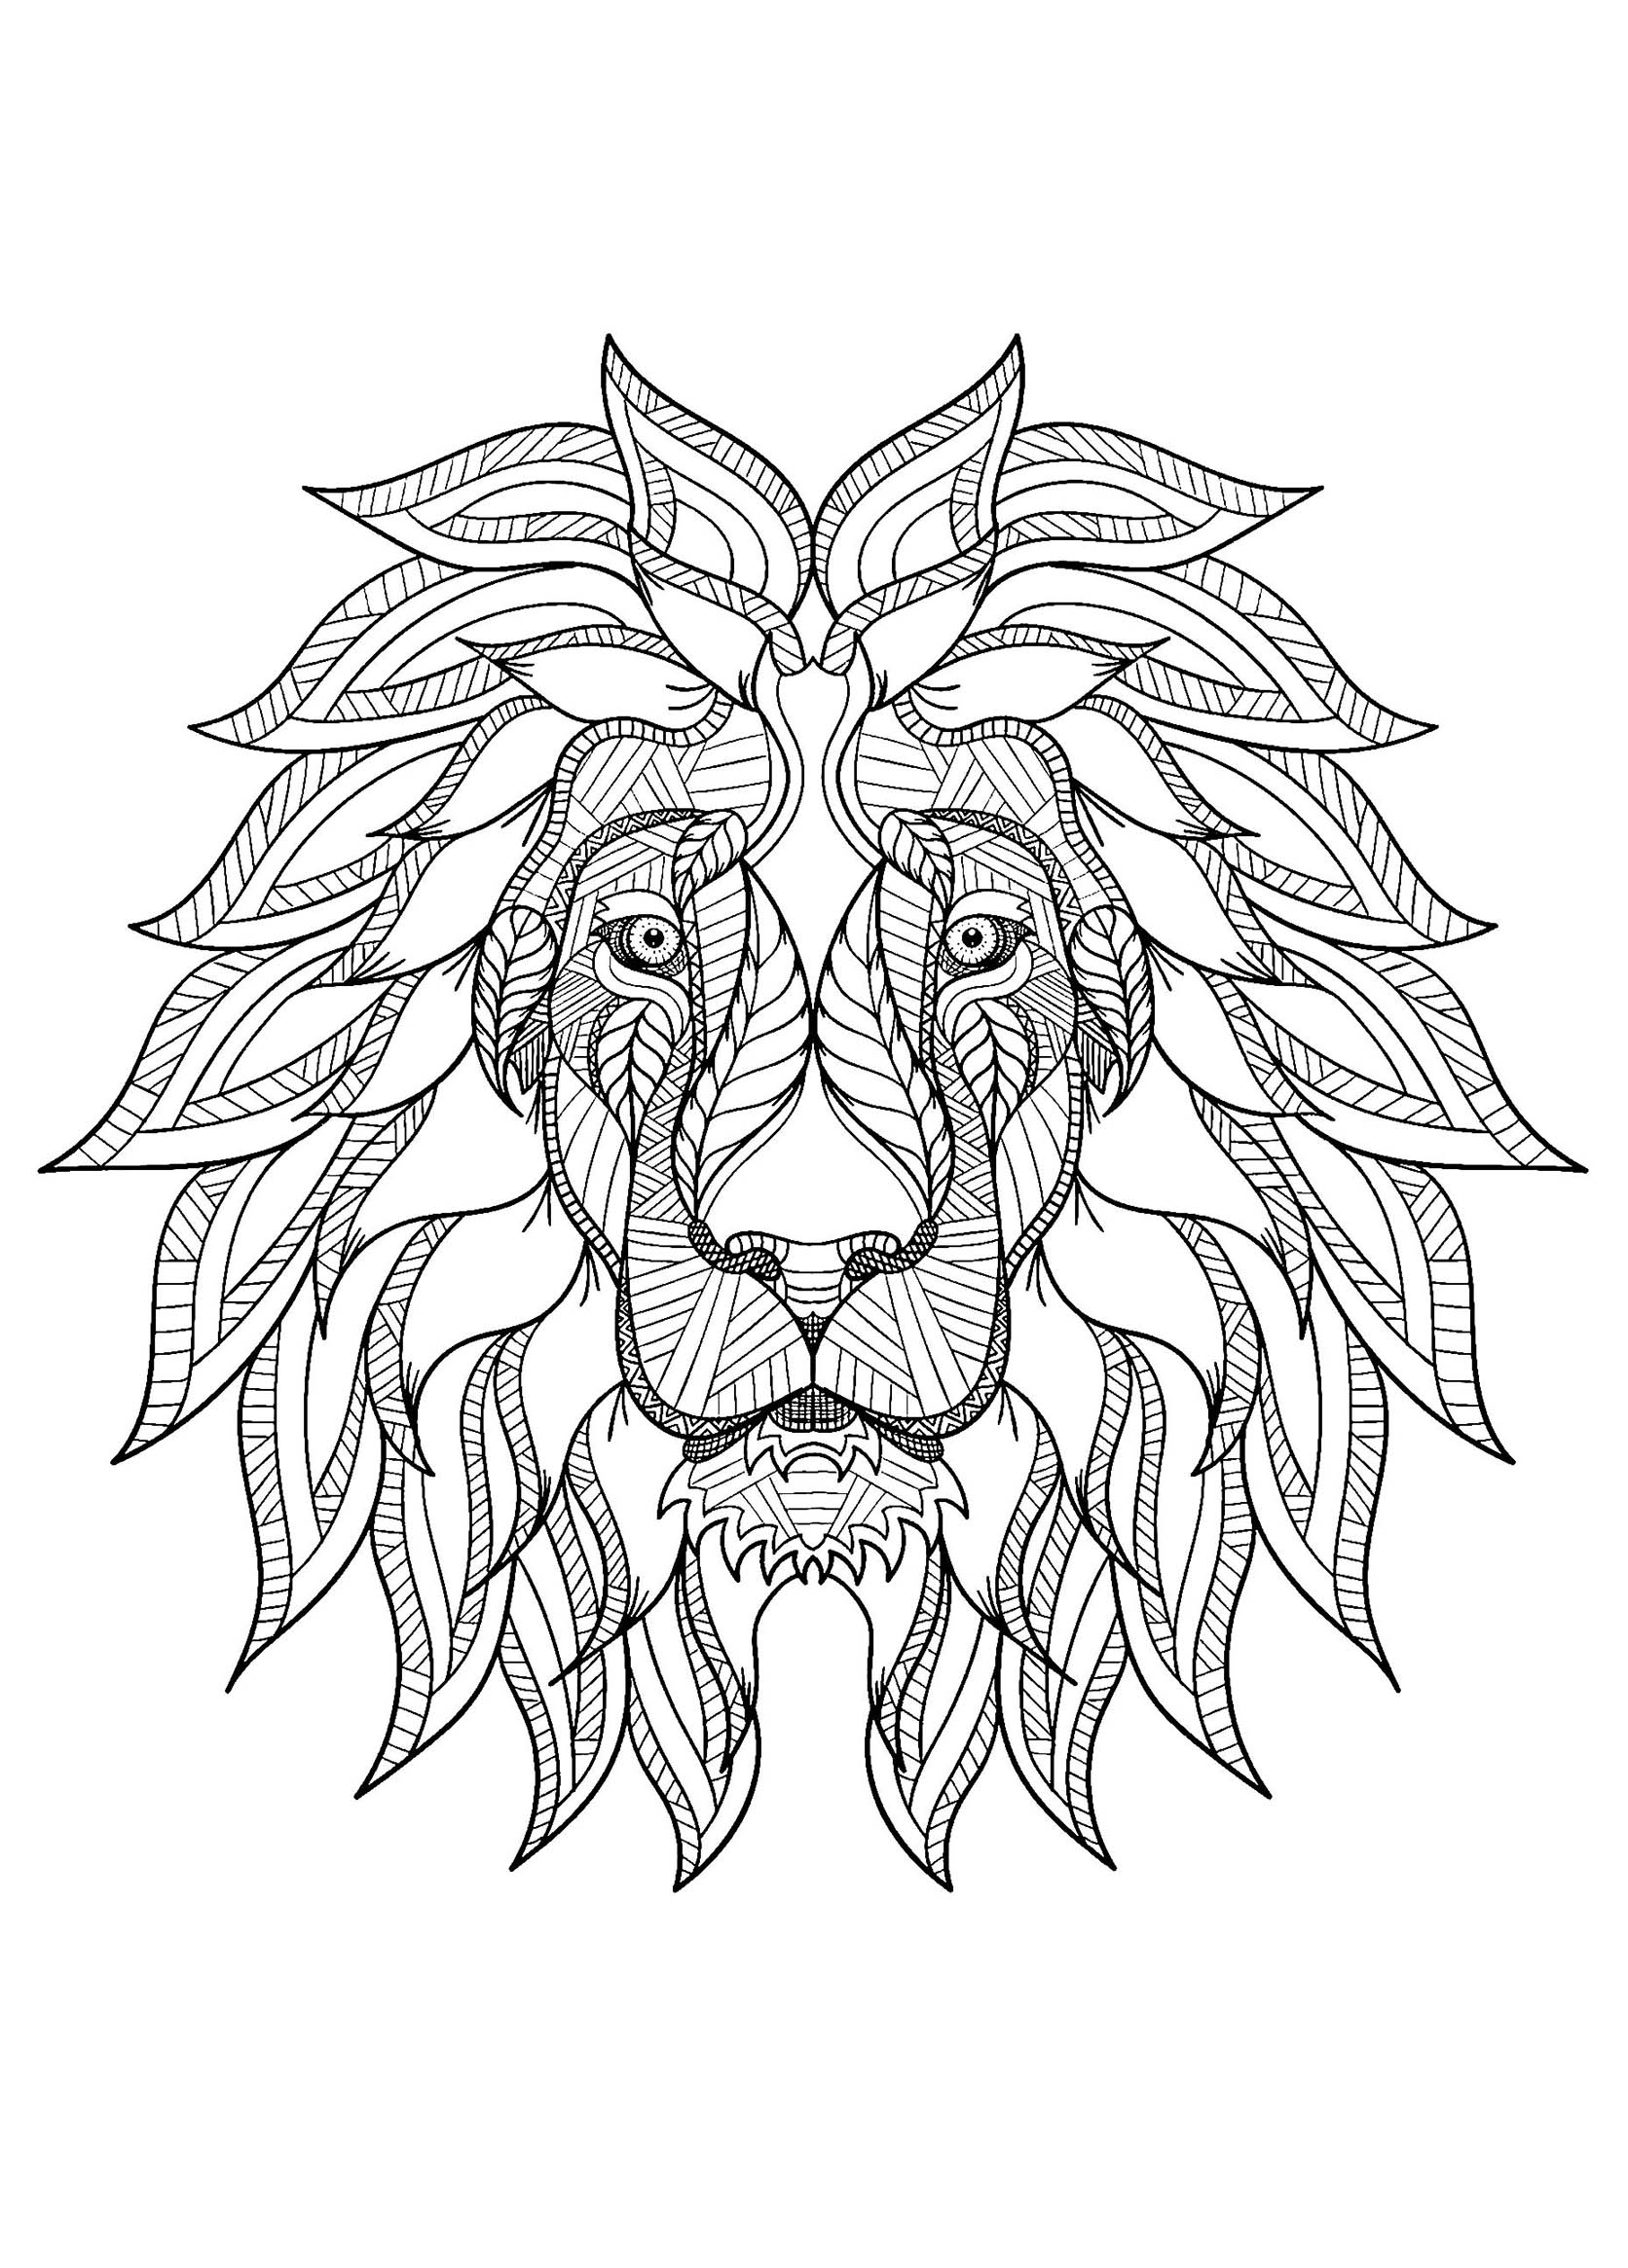 coloring lion pages lion free to color for children lion kids coloring pages coloring pages lion